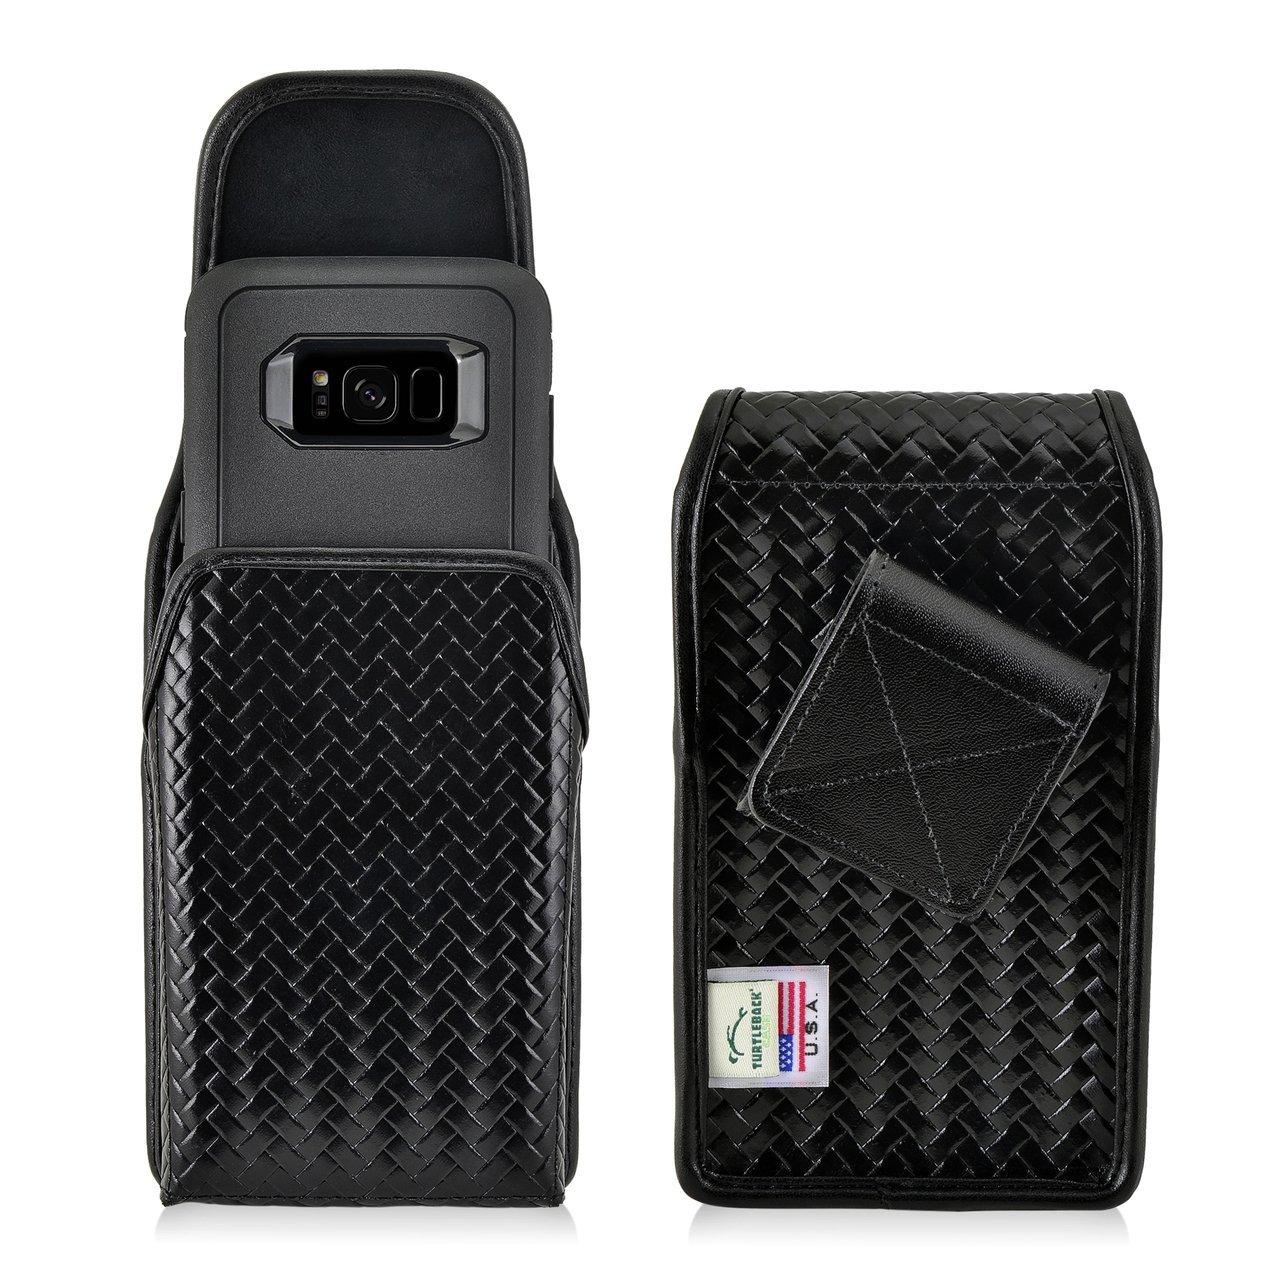 Turtleback Law Enforcement Rugged Police Basketweave Genuine Leather Vertical Duty Belt Case with Hook and Loop Closure fits Sonim XP8 Phone with Any Any case on it.